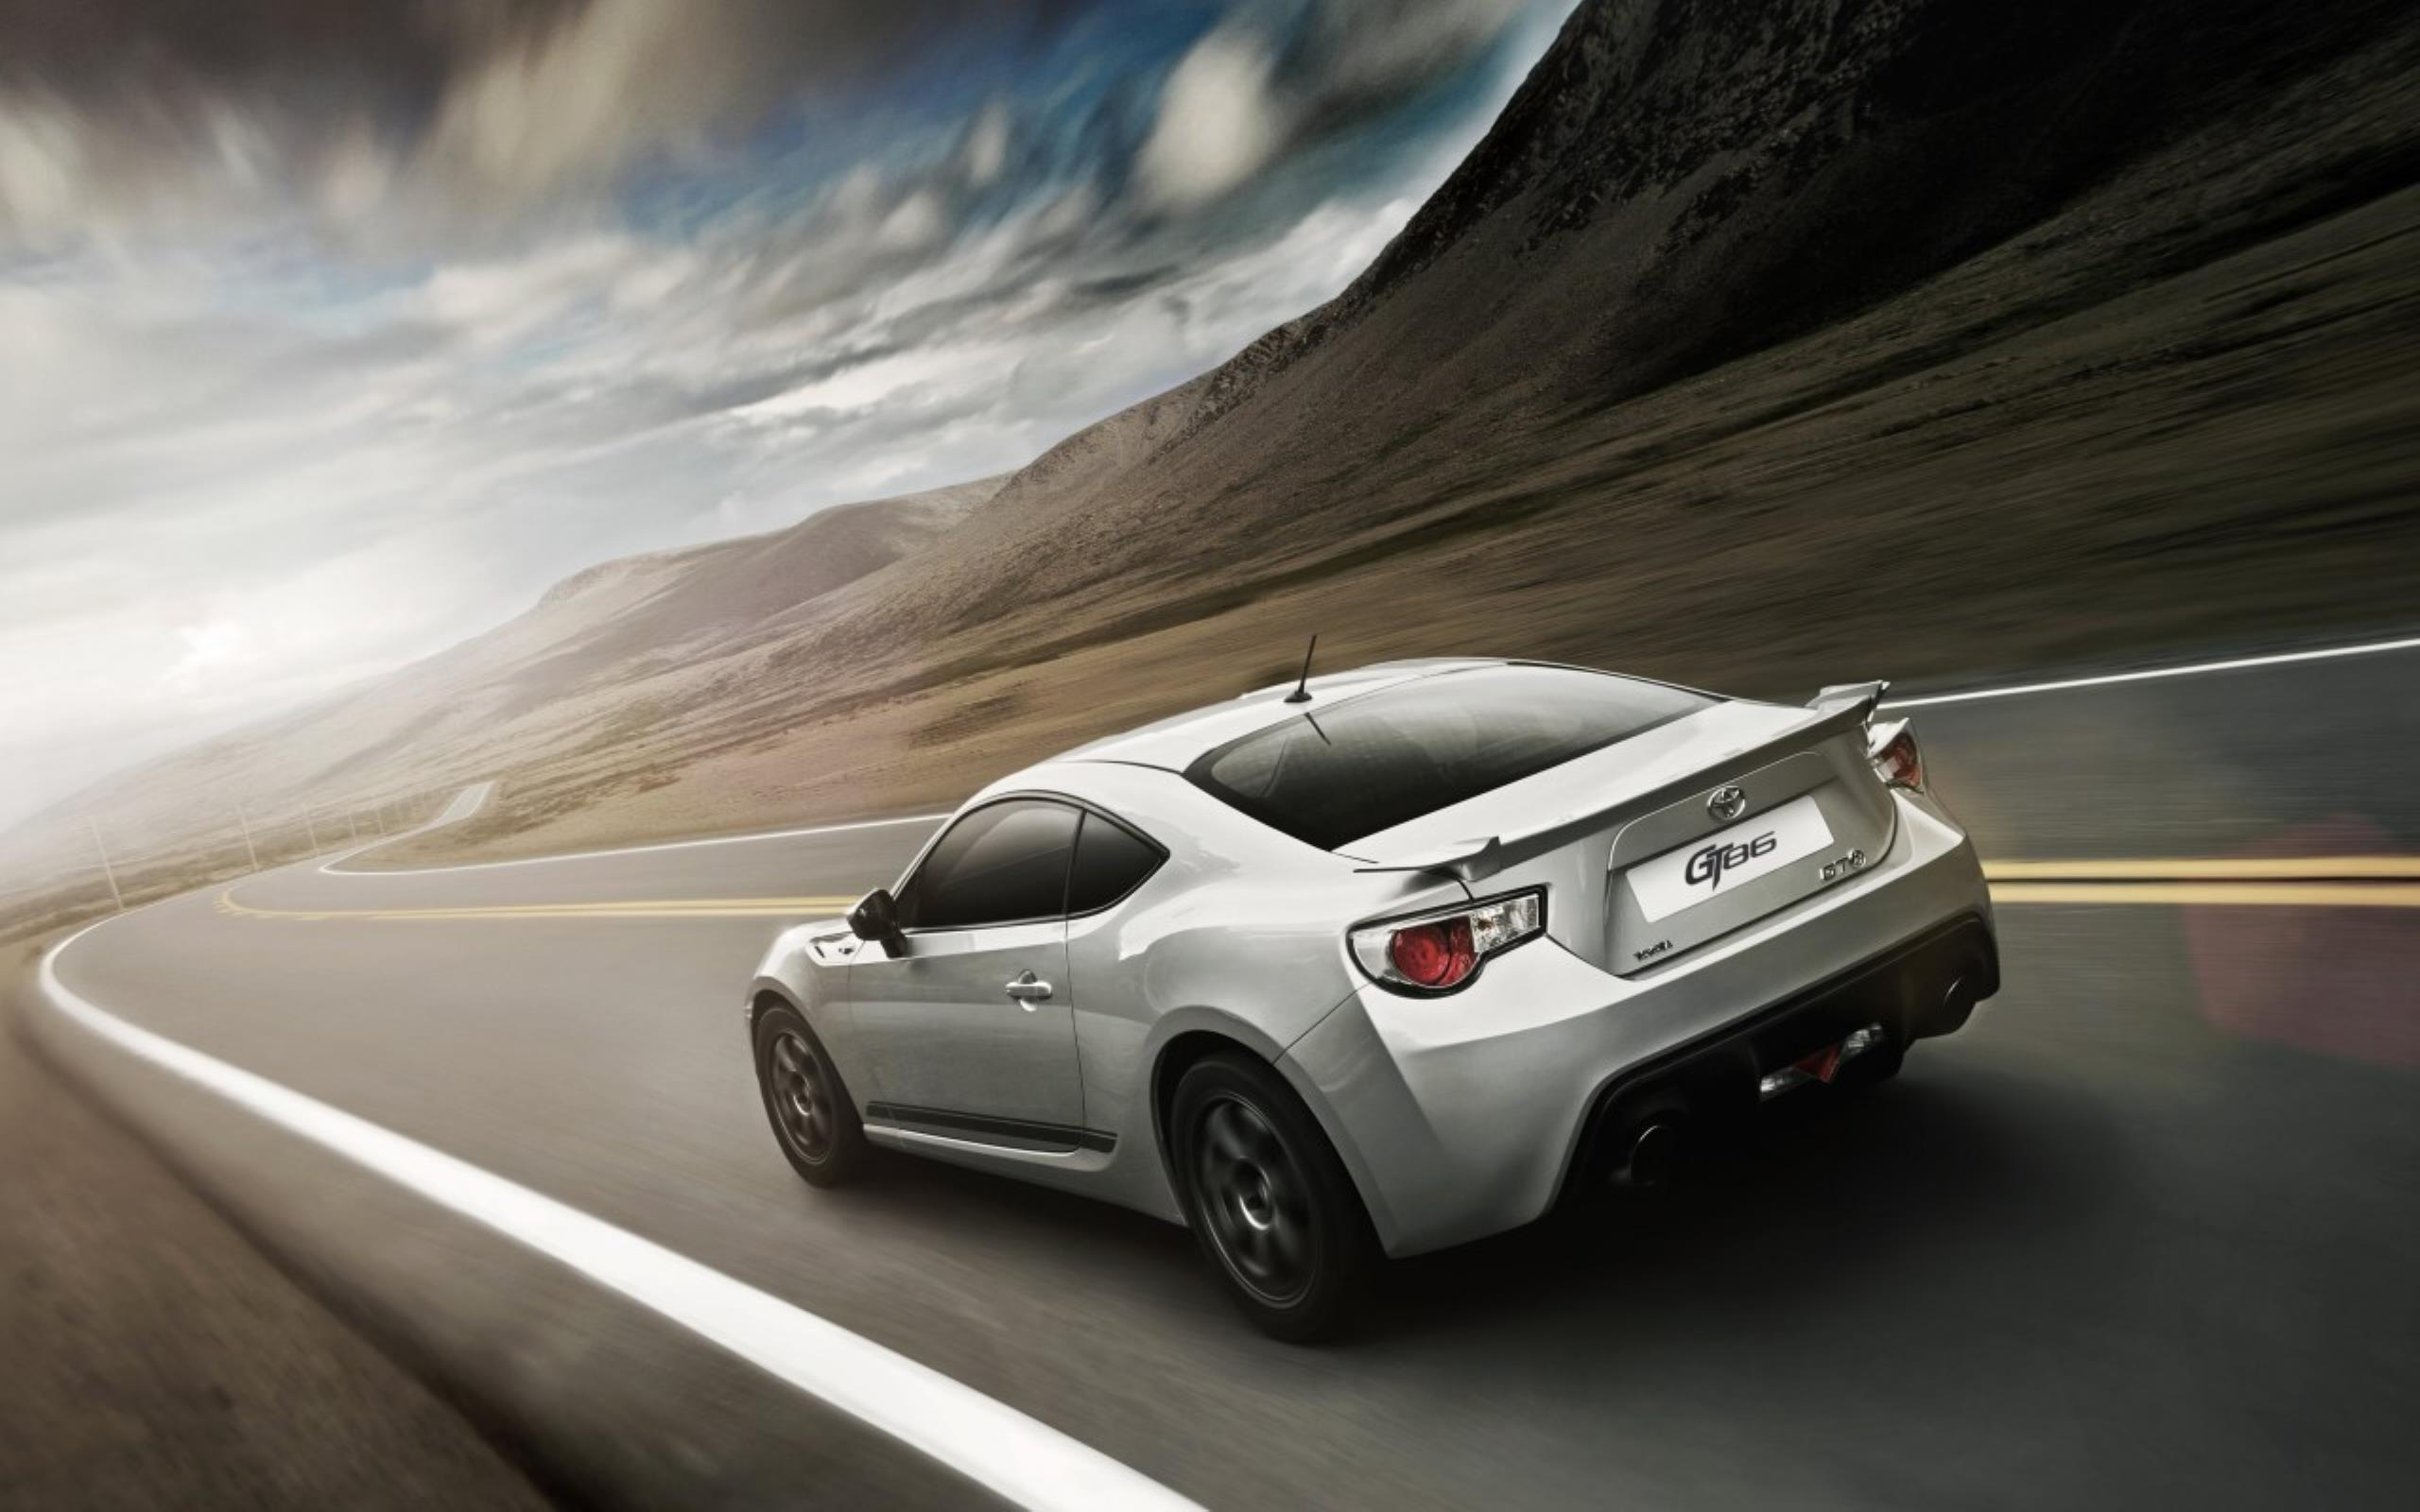 Toyota GT86 HD Wallpaper HD Wallpapers 2560x1600